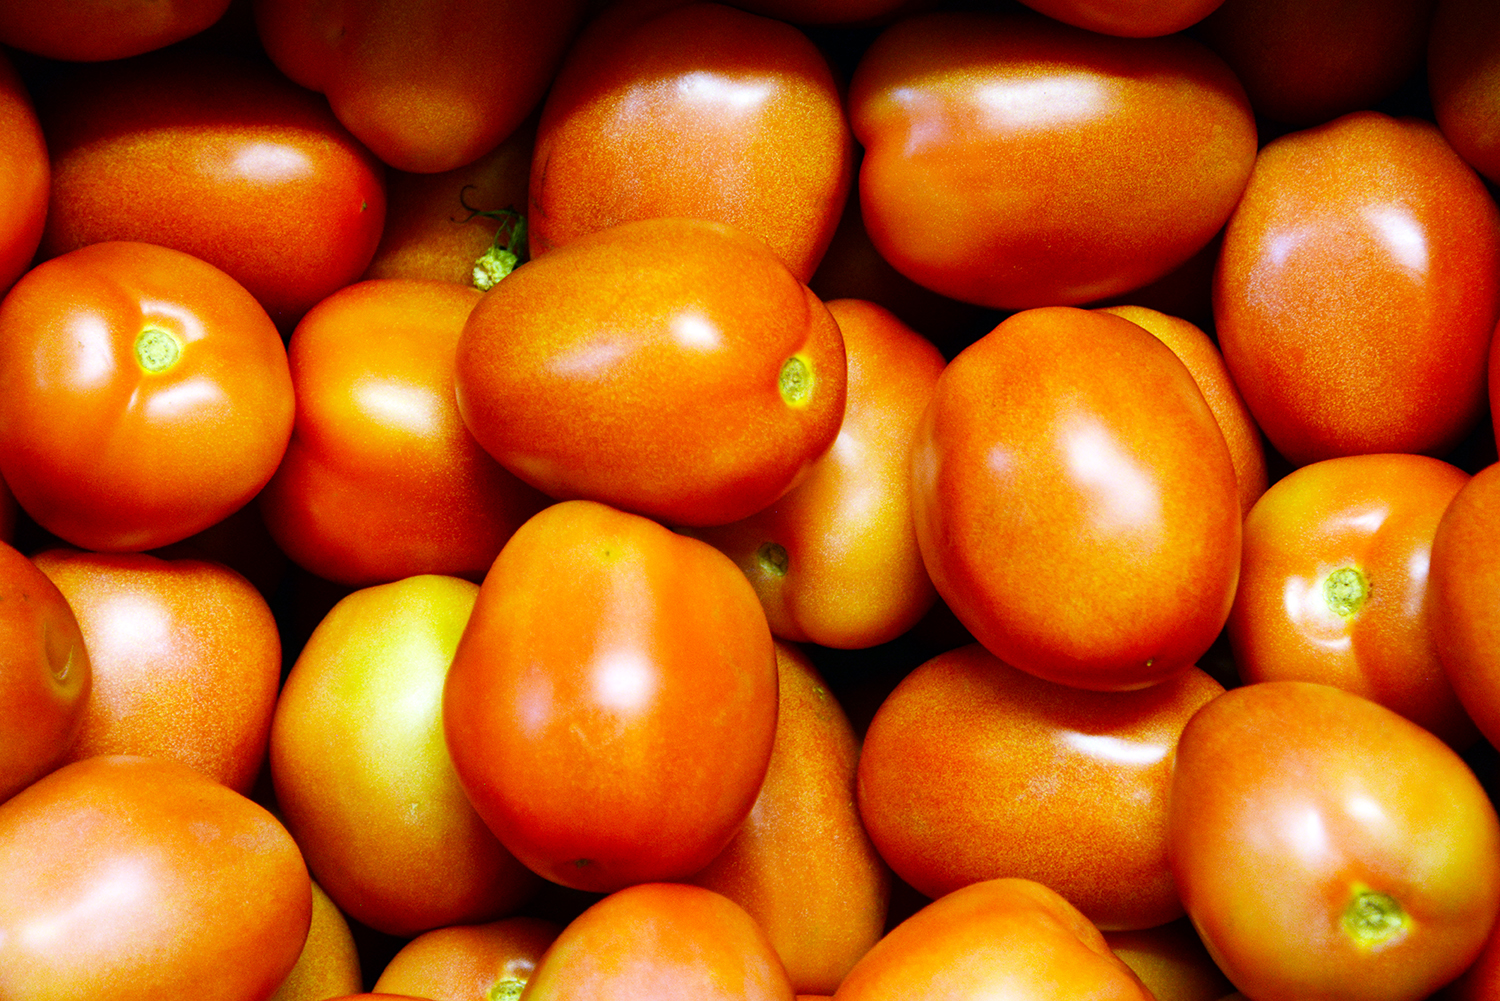 Mexico tomatoes in our Nogales, Arizona warehouse.